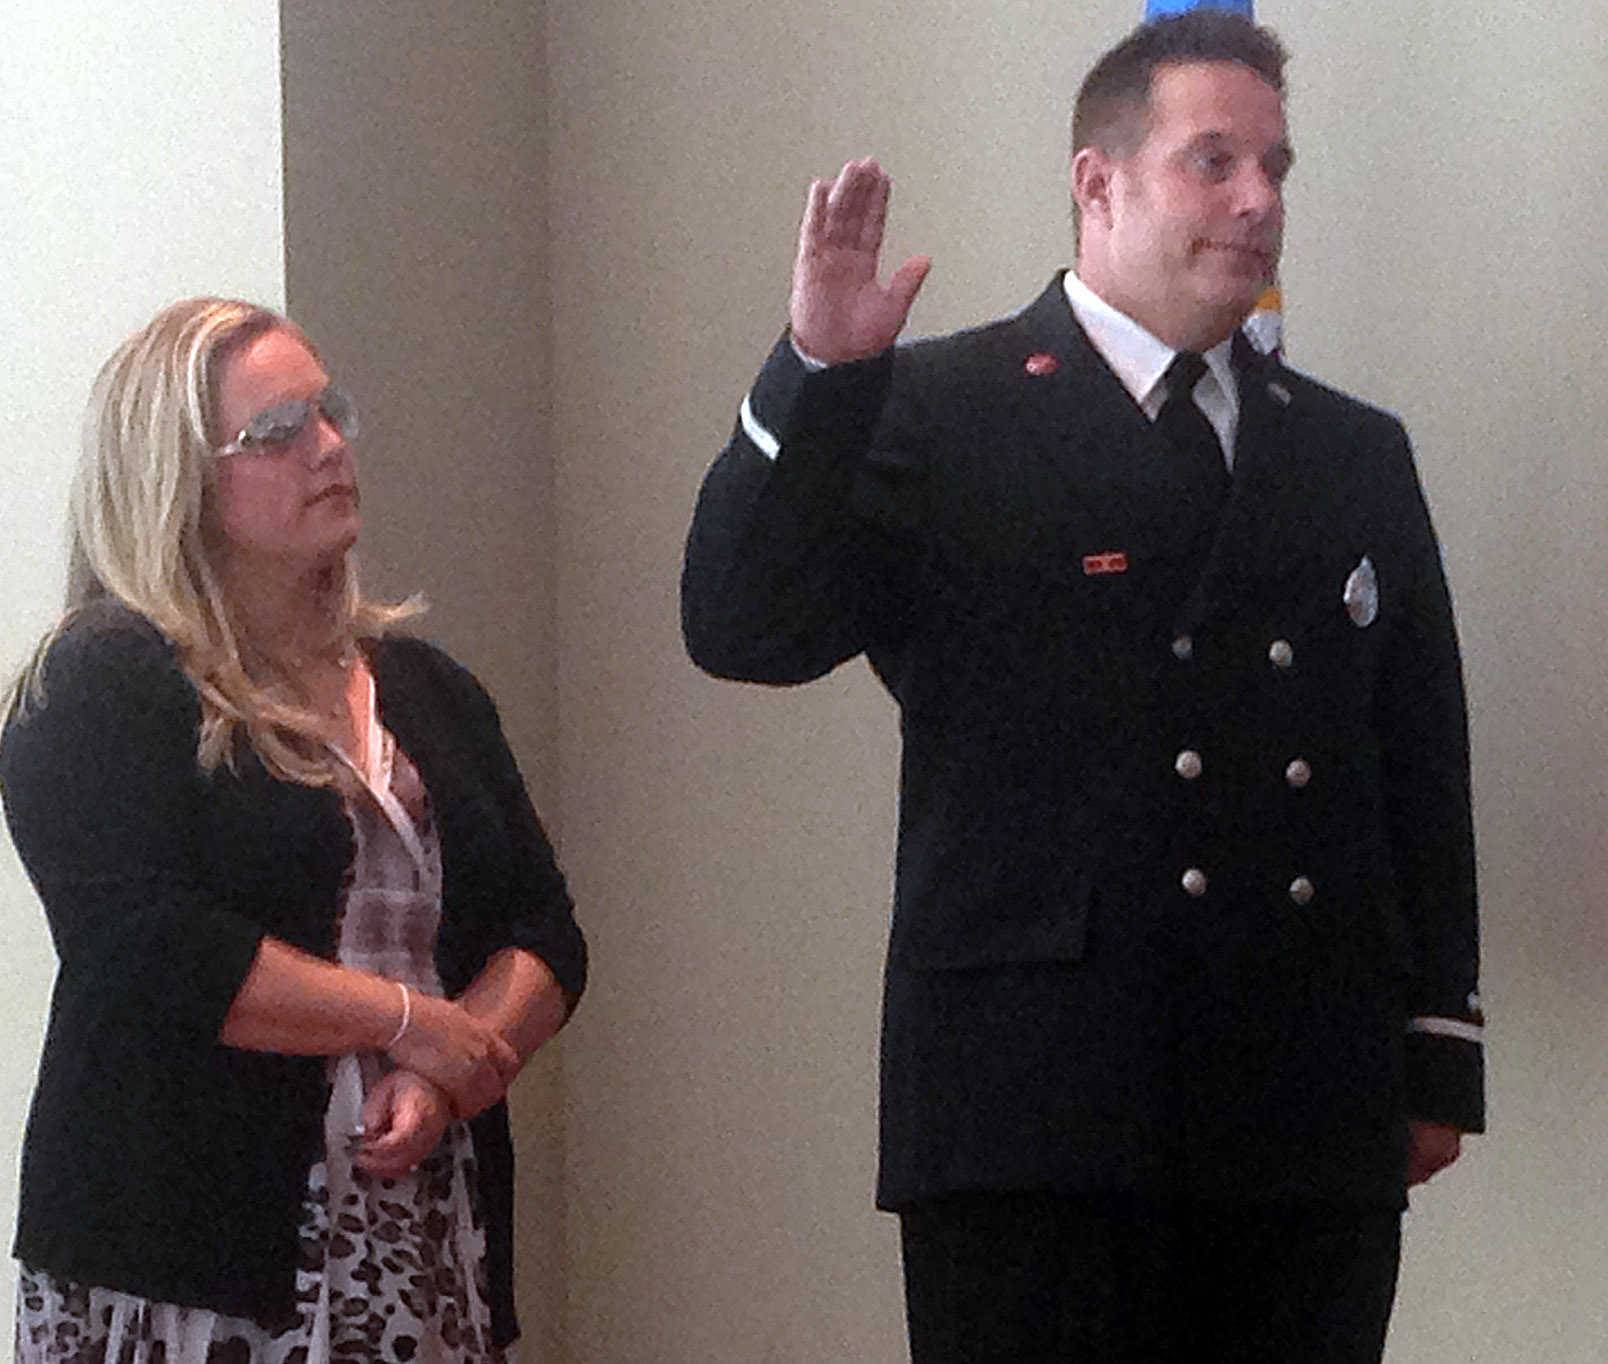 Elgin firefighter Dave Gartrell, with his wife, Kristen, is sworn in as lieutenant by Elgin City Clerk Kim Dews at a ceremony Friday at The Centre of Elgin.